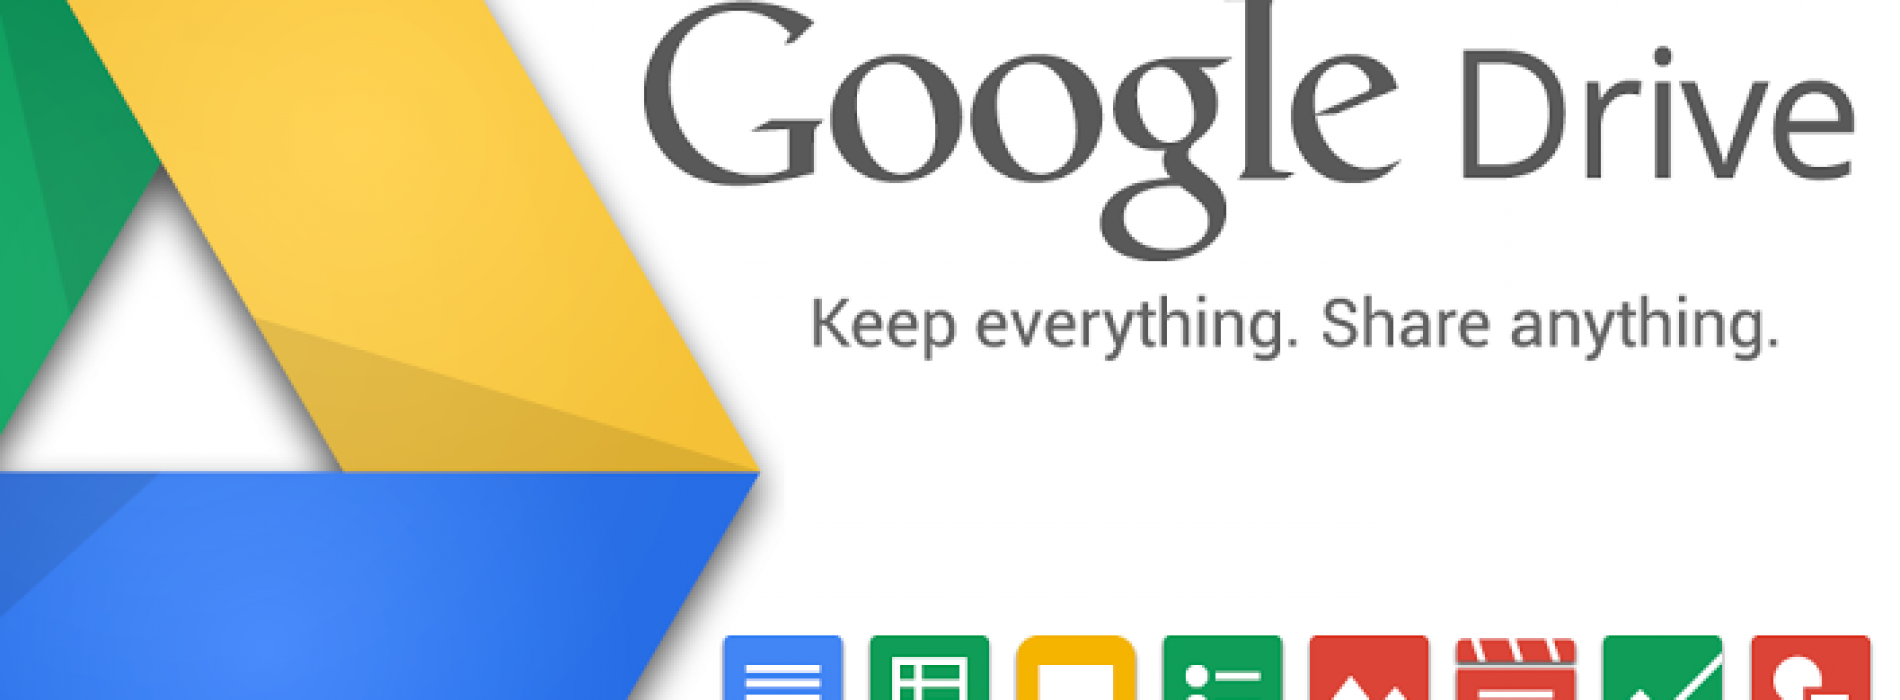 Living with Google: Google Drive